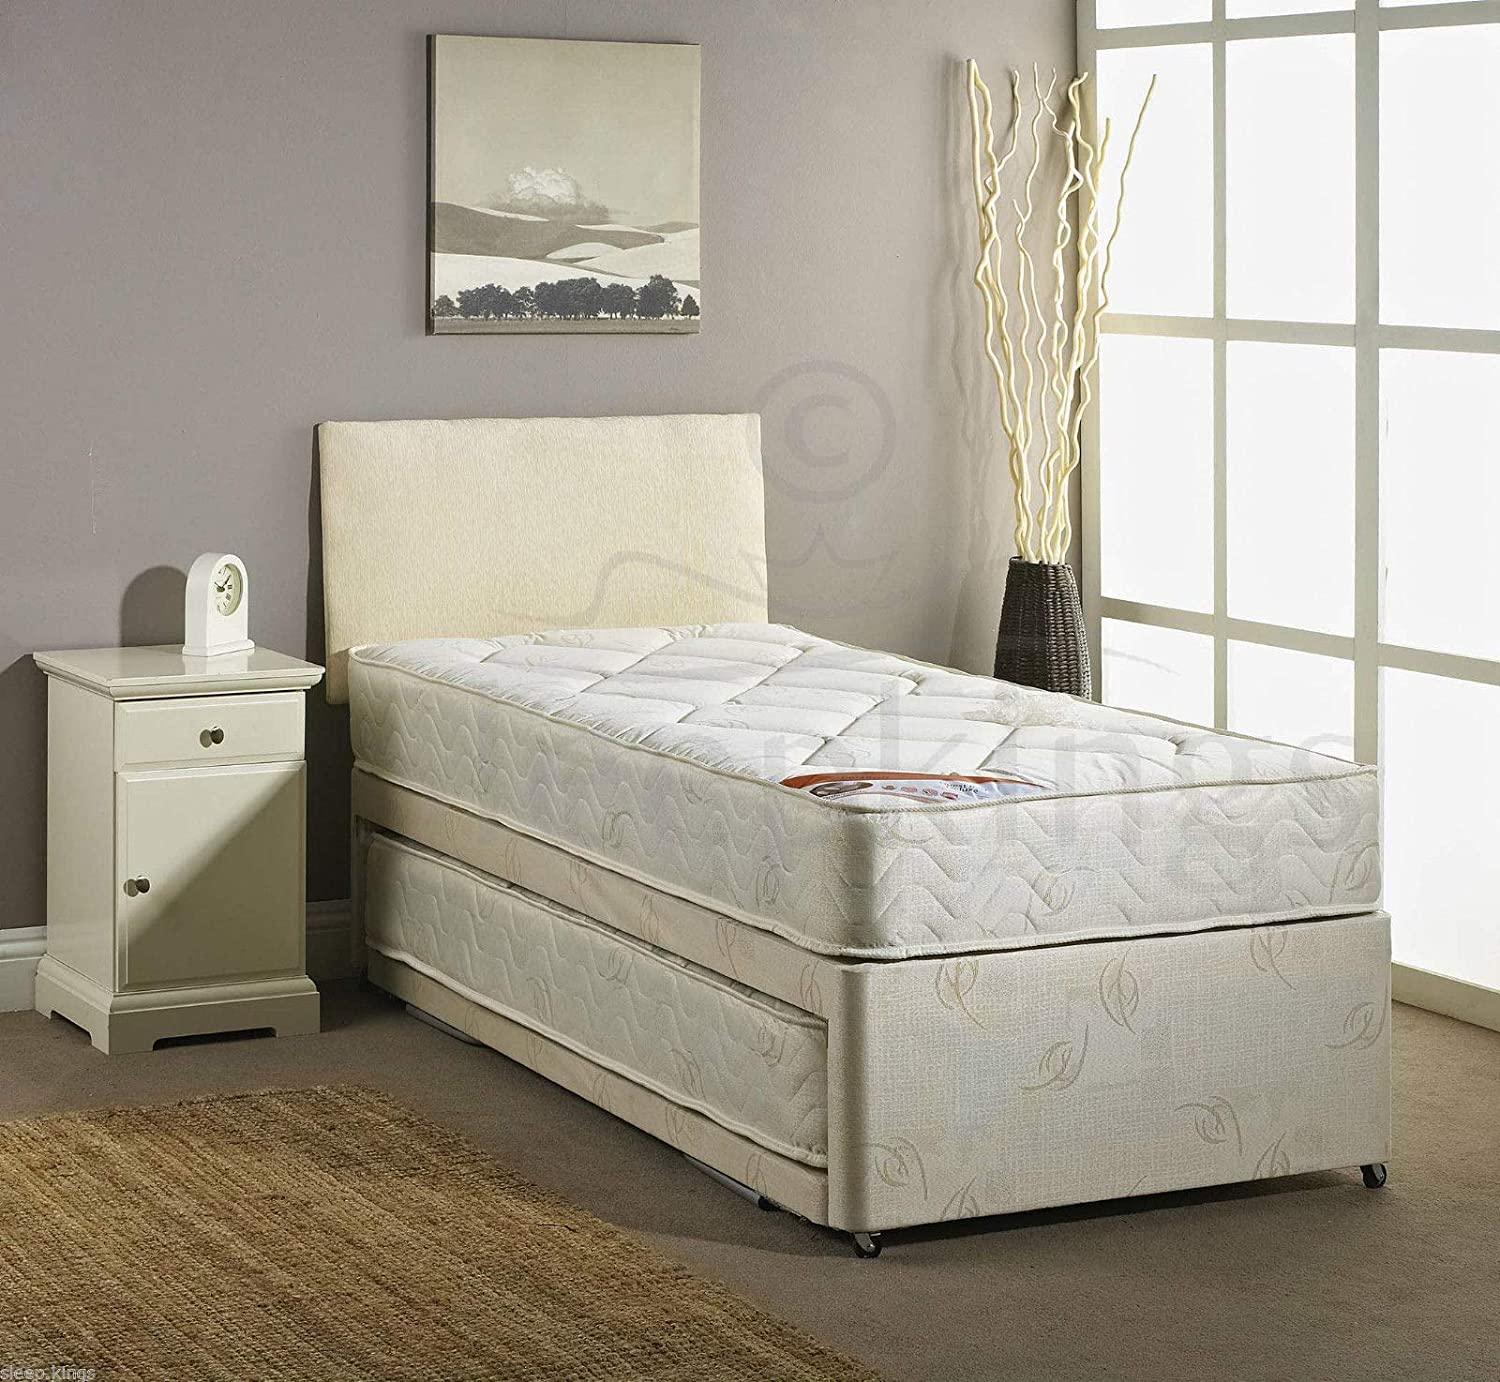 separation shoes 17fed d23c1 sleepkings 3FT SINGLE GUEST BED 3 IN 1 WITH MATTRESSES ...